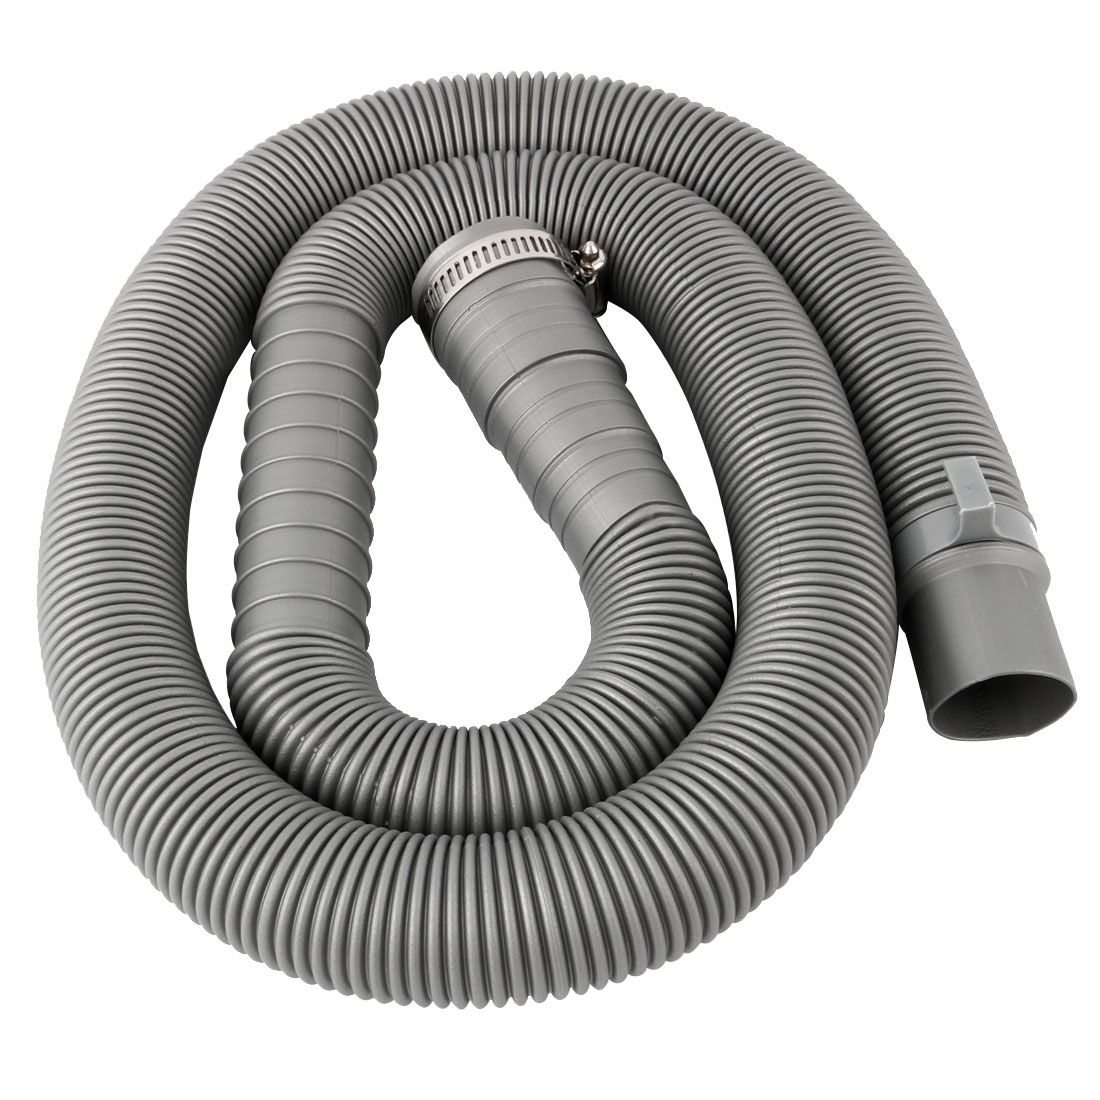 4.3Ft PVC Washing Machine Drain Hose Extension Kit Gray